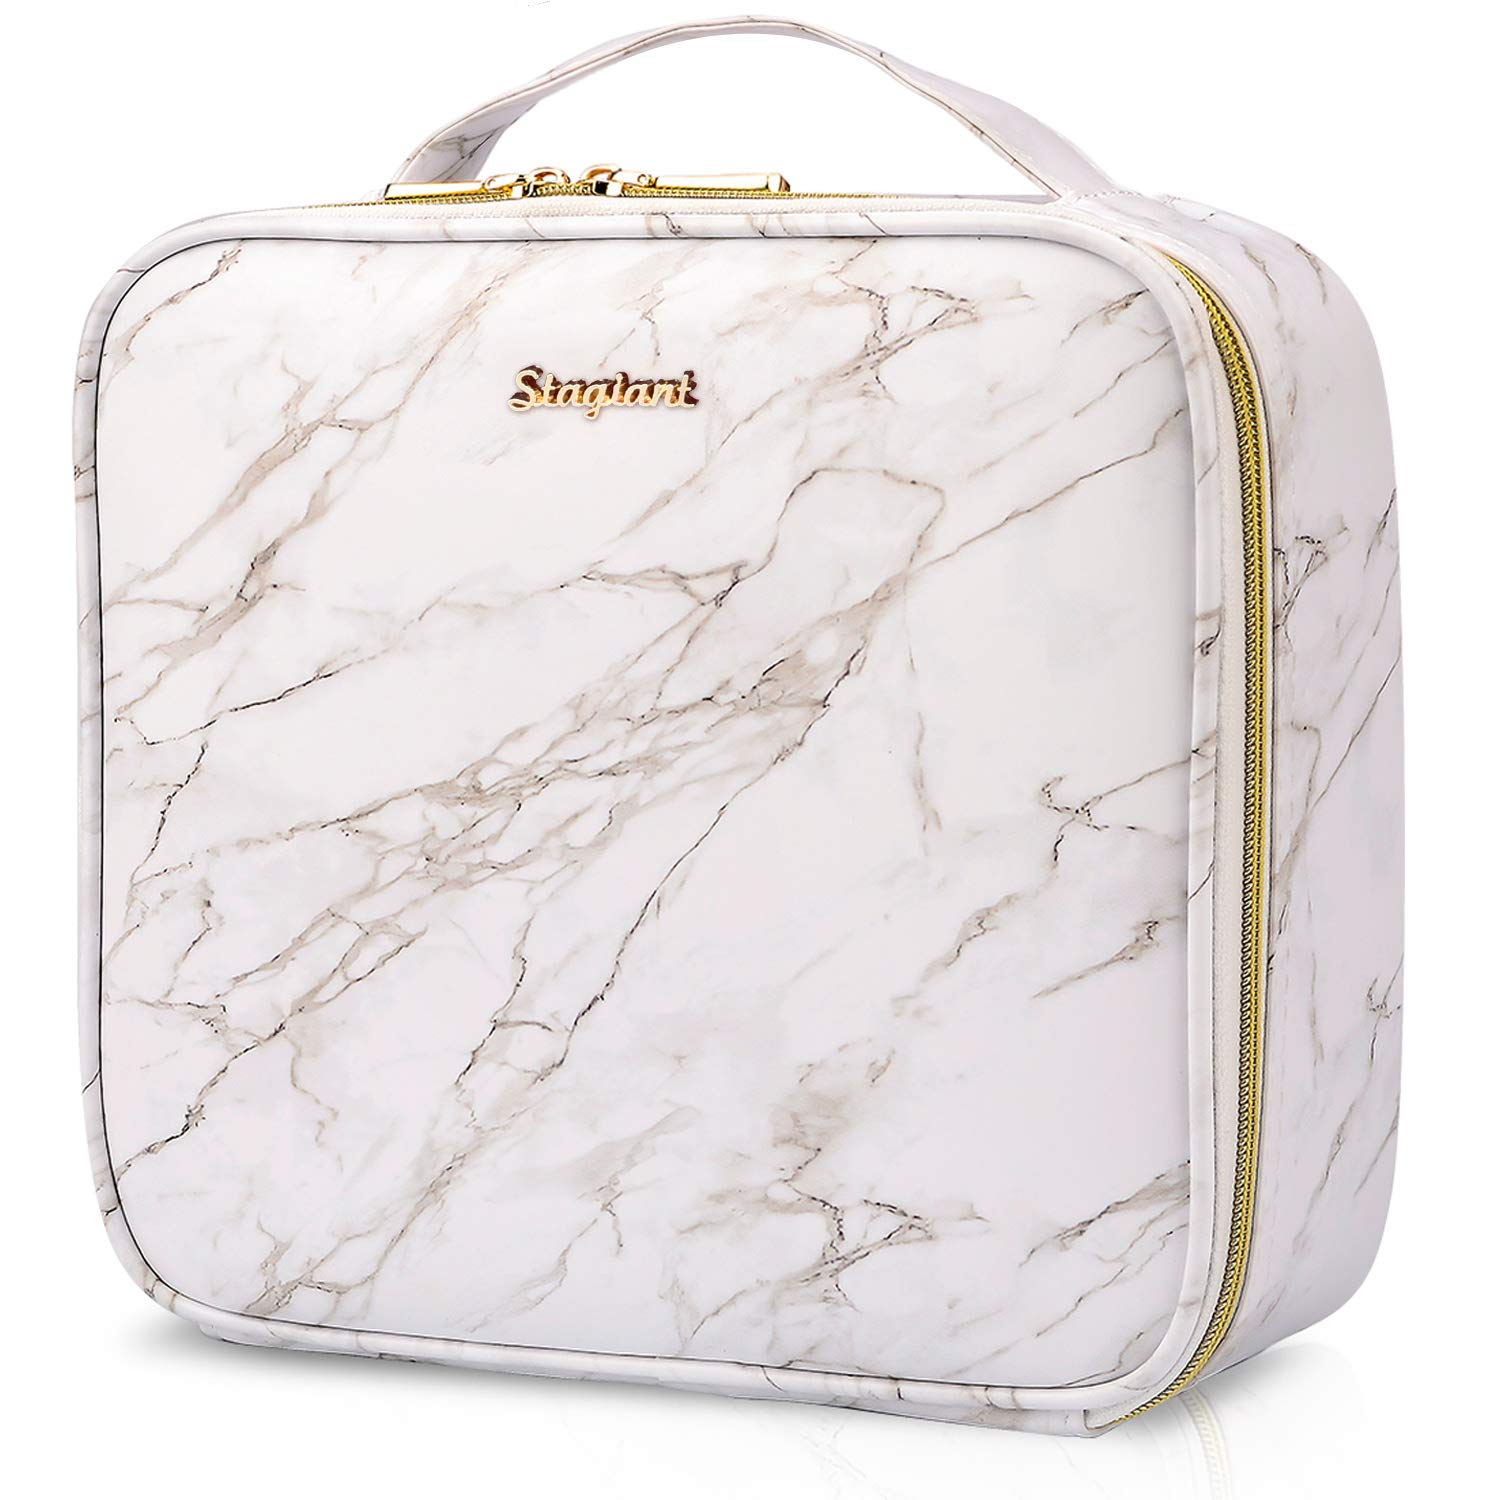 Stagiant PU Leather Makeup Bag Cosmetic Case Travel Beauty Box Hairdressing Tools Organiser Storage Box Make Up Train Case with Removable Compartment, Marble Pattern